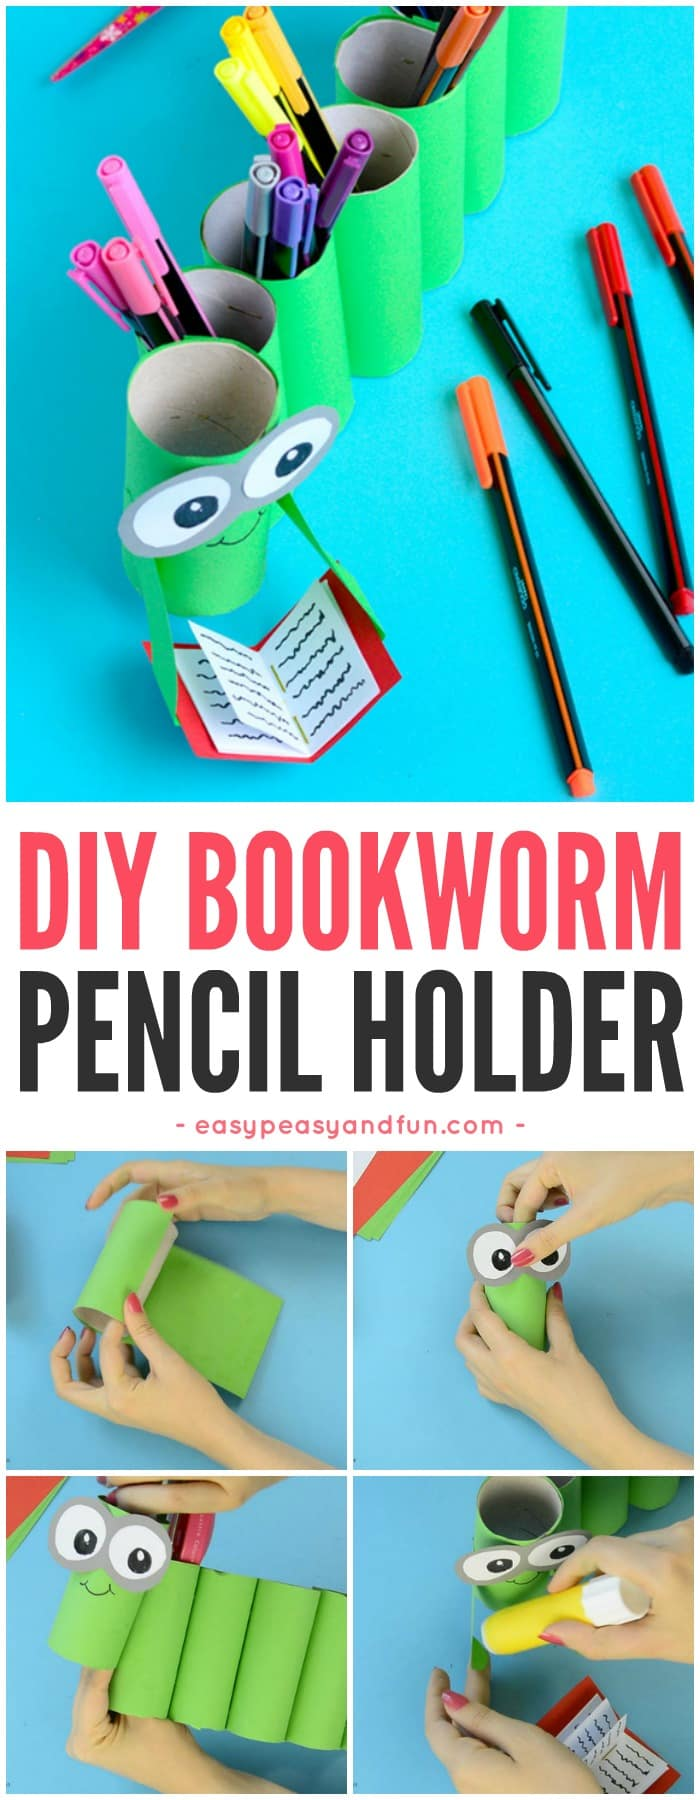 Homemade Pencil Holders Diy Bookworm Paper Roll Pencil Holder Easy Peasy And Fun